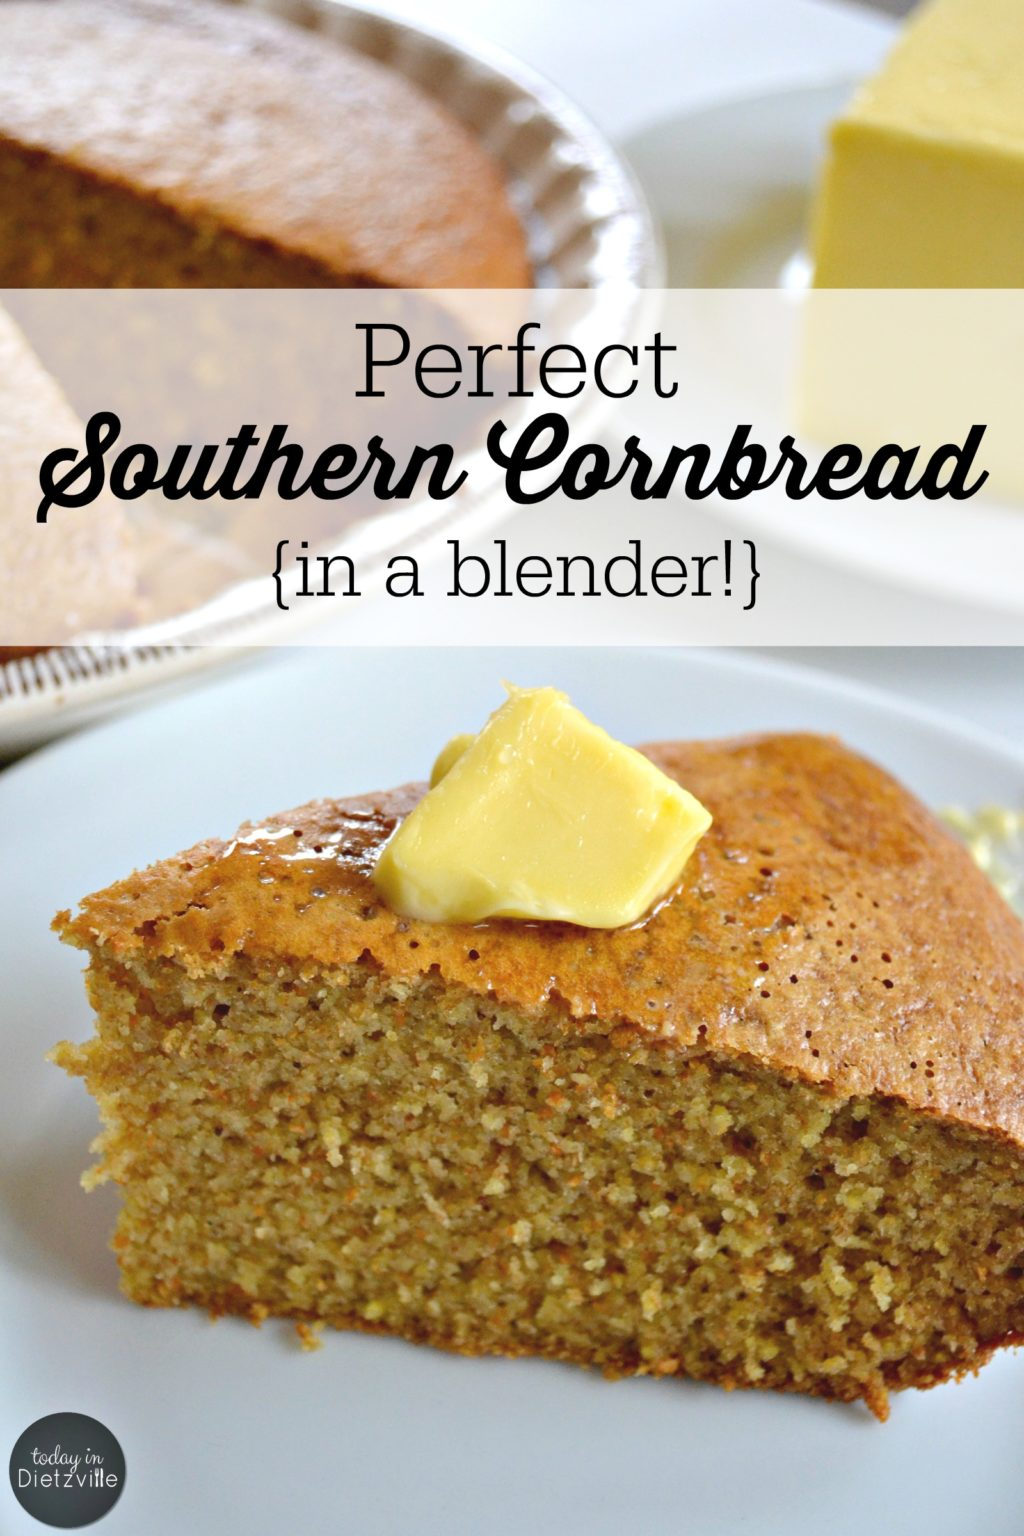 Perfect Southern Cornbread {in a blender!} | No Southern girl should leave home without it... A reliable recipe for good, homemade cornbread to serve with beans, chili, or even for breakfast. And if you're needing an easy, homemade cornbread for your Thanksgiving cornbread stuffing, here you go! | AllTheNourishingThings.com